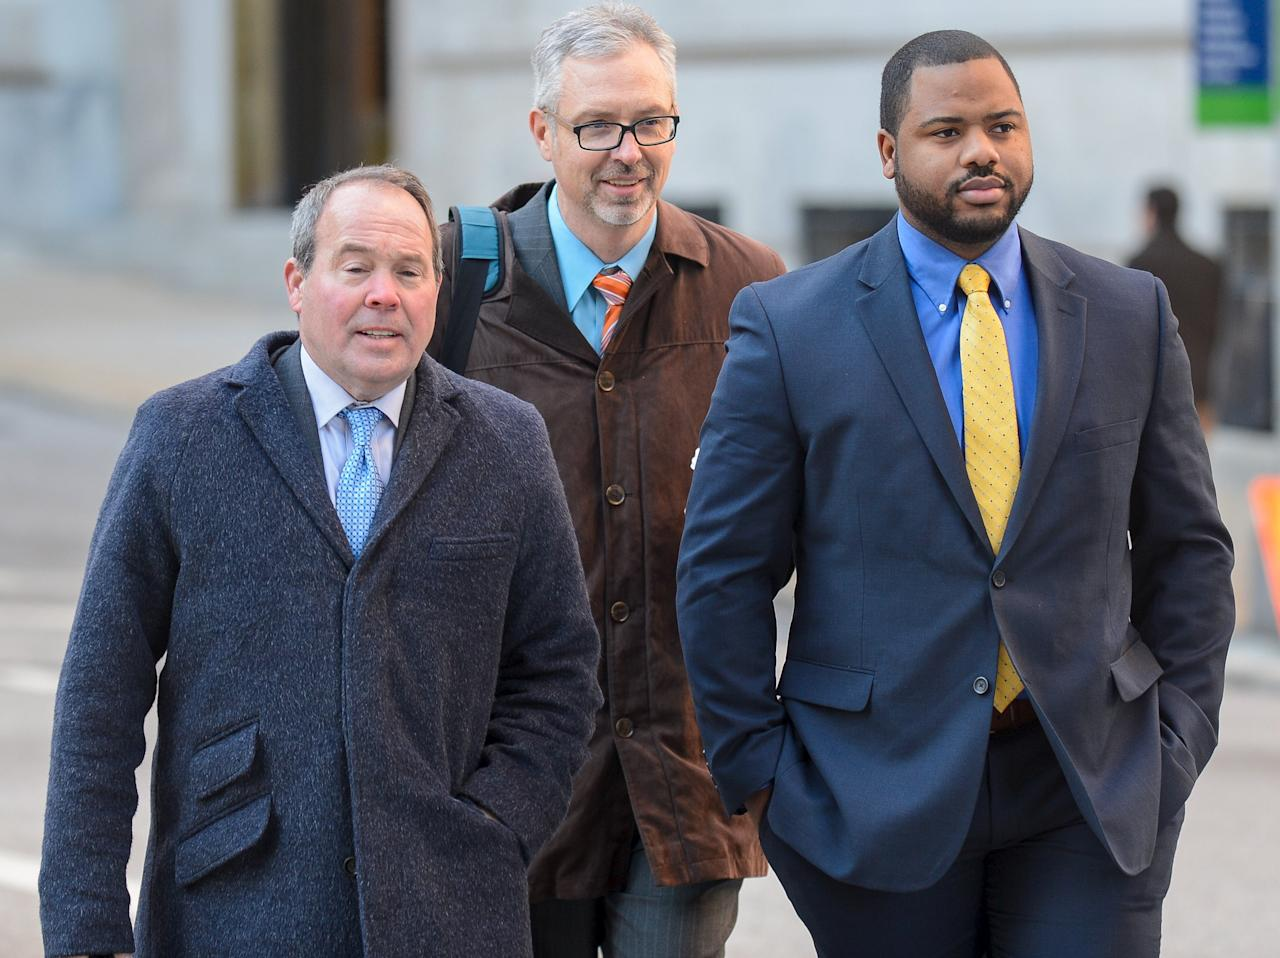 REFILE - CORRECTING IDENTITY OF ATTORNEYBaltimore Police Officer William Porter (R) with his attorneys Joseph Murtha (L) and Gary Proctor arrive at the courthouse for pretrial hearings in the case of Caeser Goodson in Baltimore, Maryland, January 6, 2016. A Maryland judge on Wednesday ordered Porter to testify against other officers charged in the death of detainee Freddie Gray. A lawyer for Porter said he would seek an appeals court injunction to block Porter from testifying against Officer Caesar Goodson Jr. and Sergeant Alicia White. REUTERS/Bryan Woolston